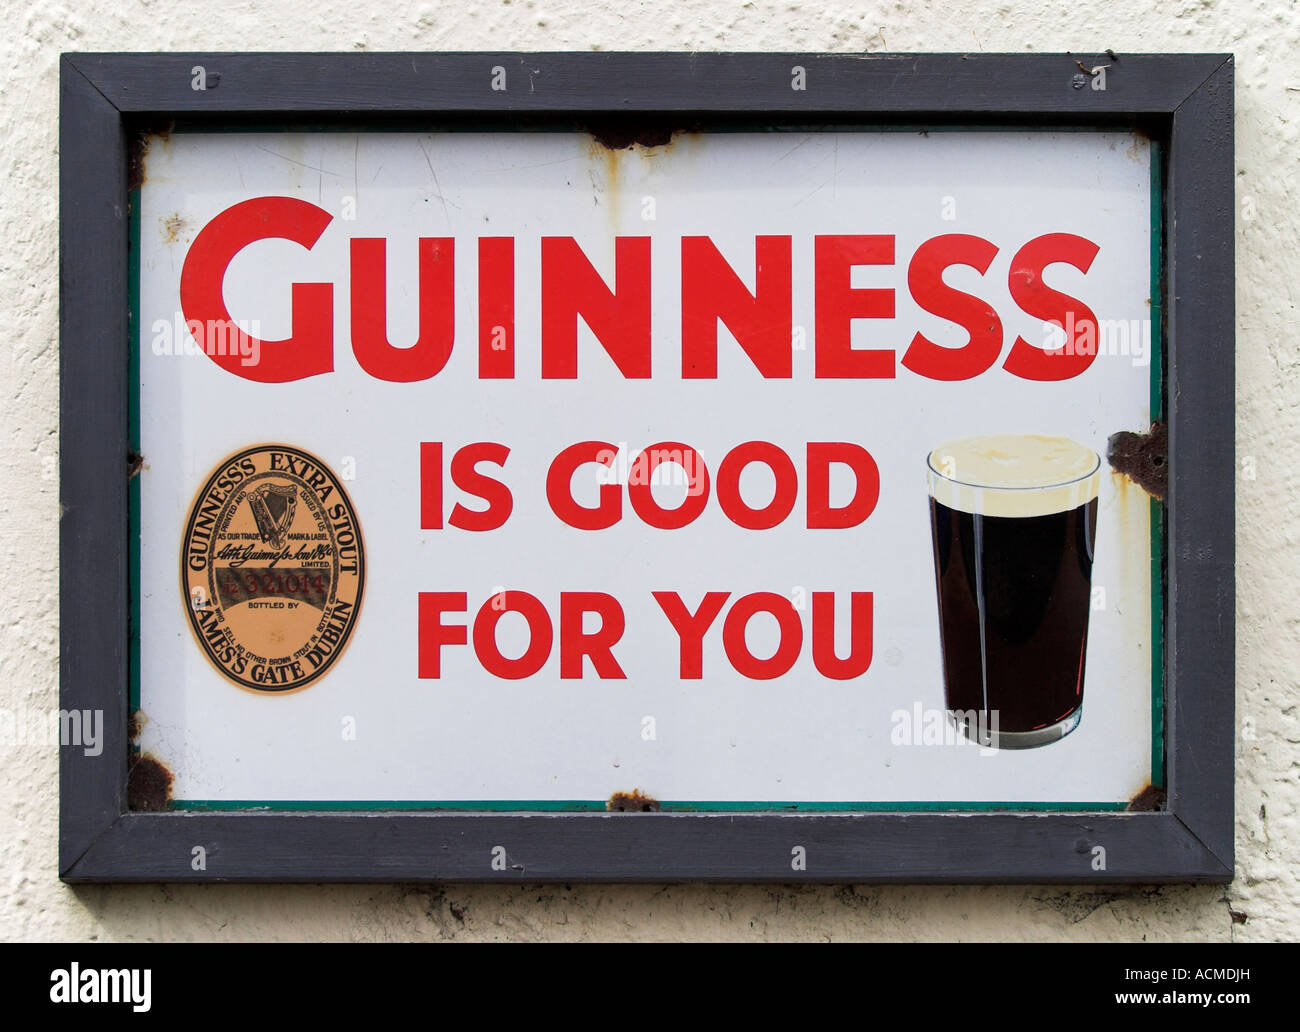 Guinness is good for you advert at Bunratty Folk Park Co Clare Ireland Stock Photo